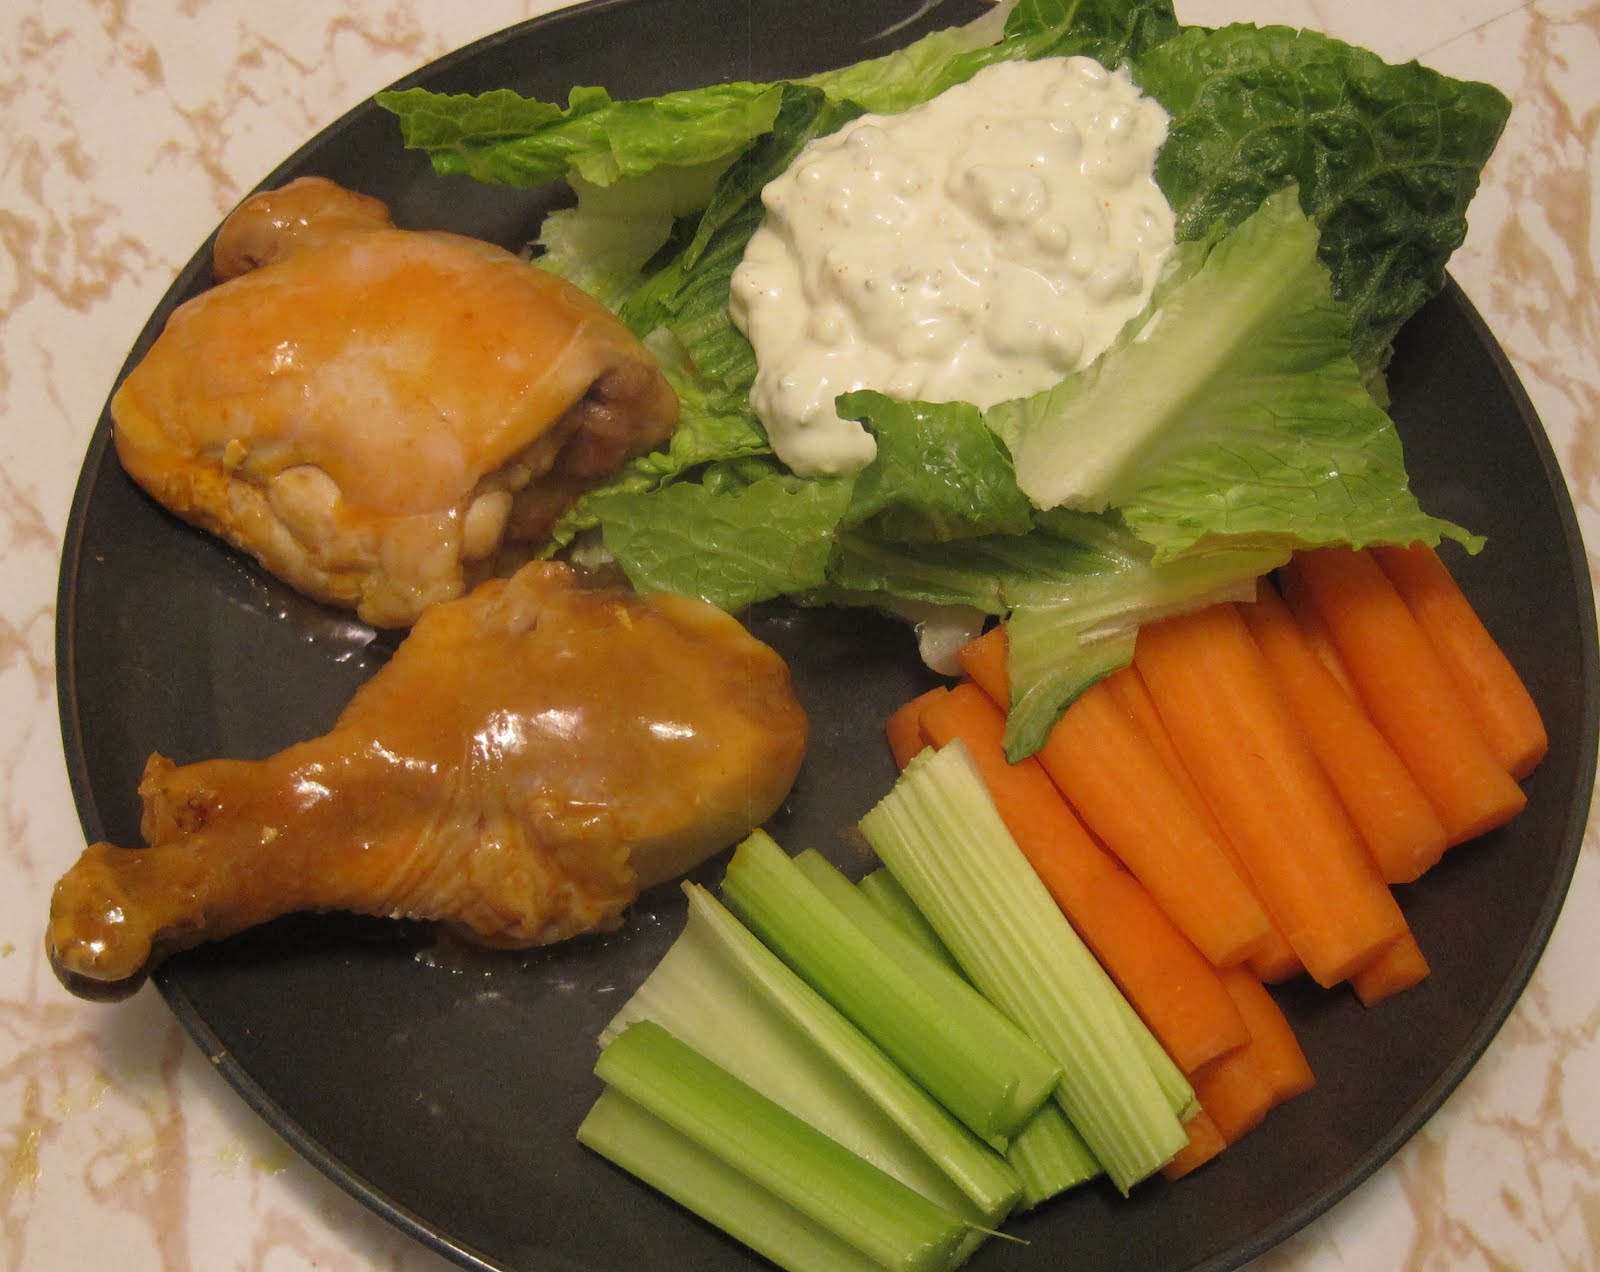 ... chicken with the traditional celery and carrot sticks, plus some salad